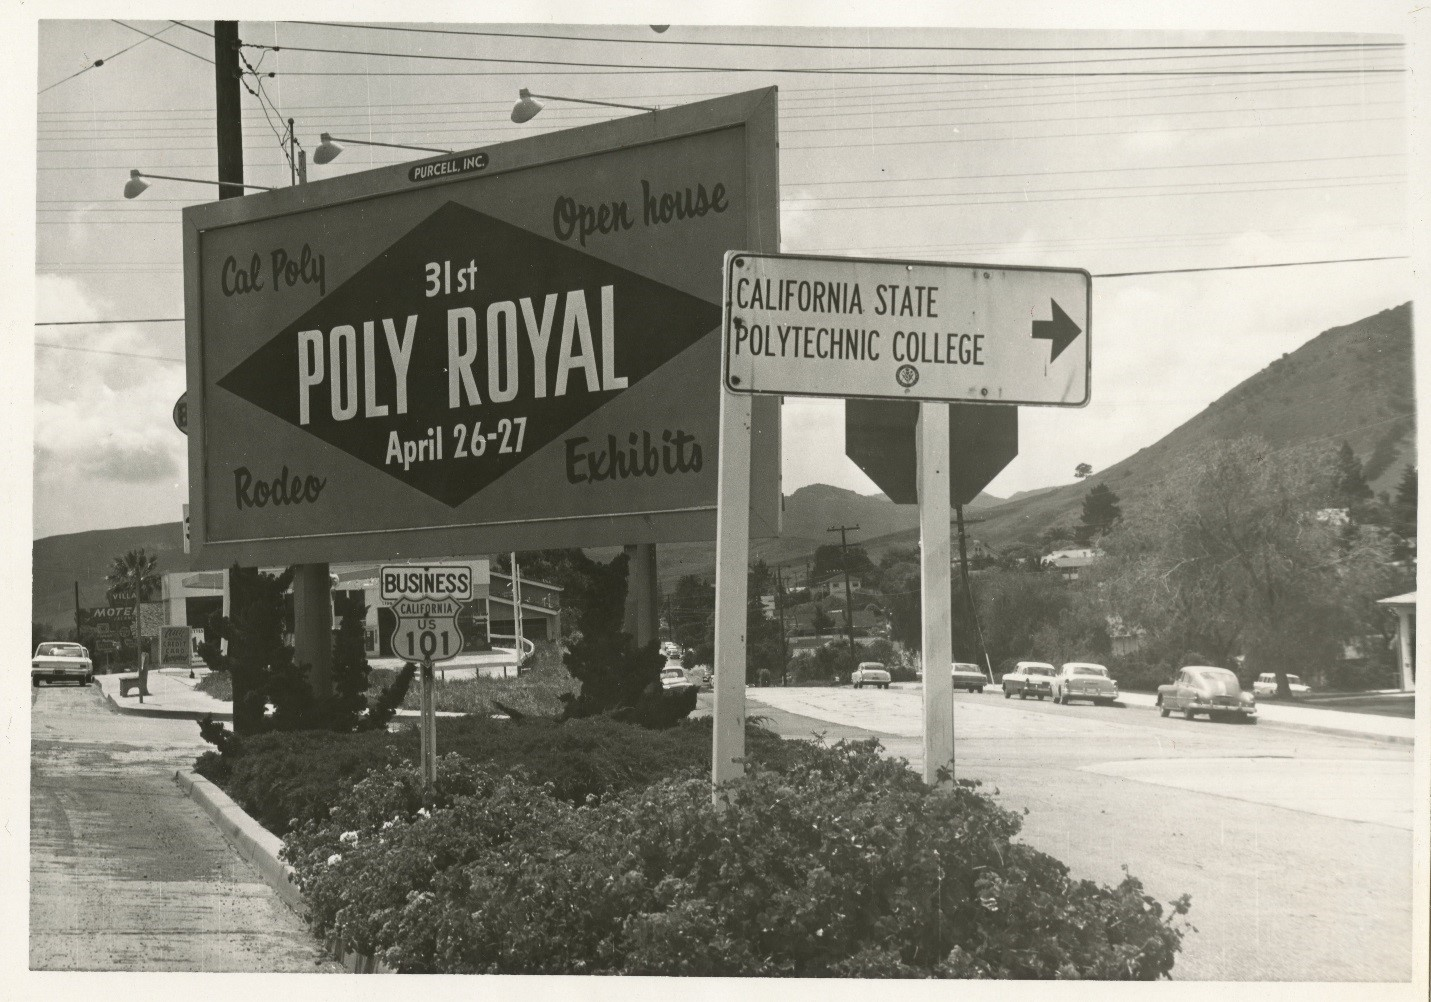 Cal Poly Open House - Poly Royal road sign